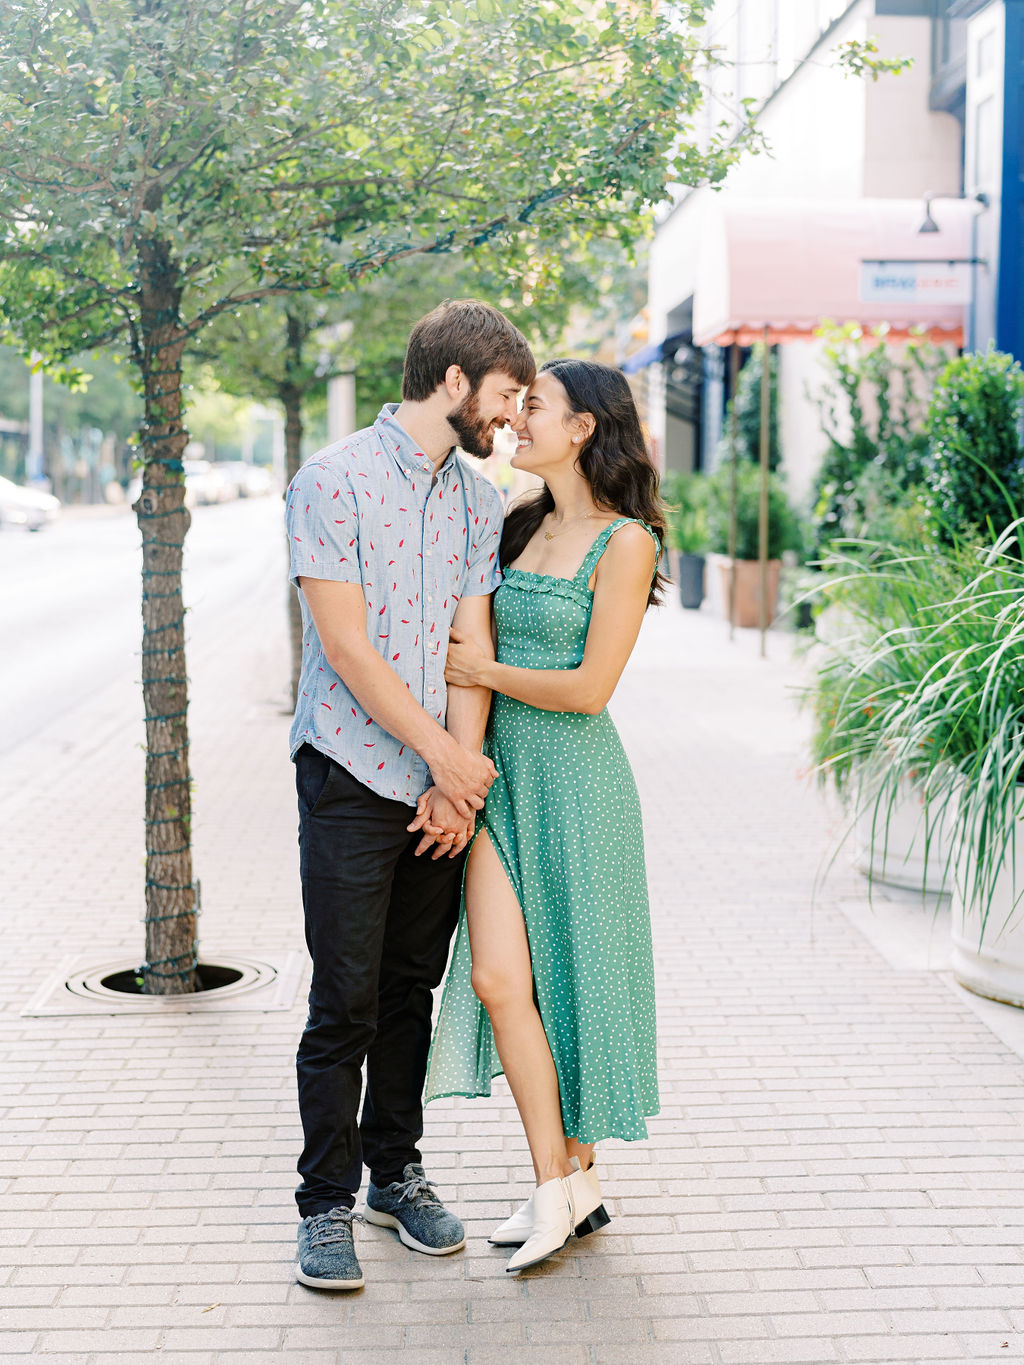 Austin-Intimate-Wedding-Elopement-Photograper-Film-Downtown-Engagement-Session-Home-38.jpg